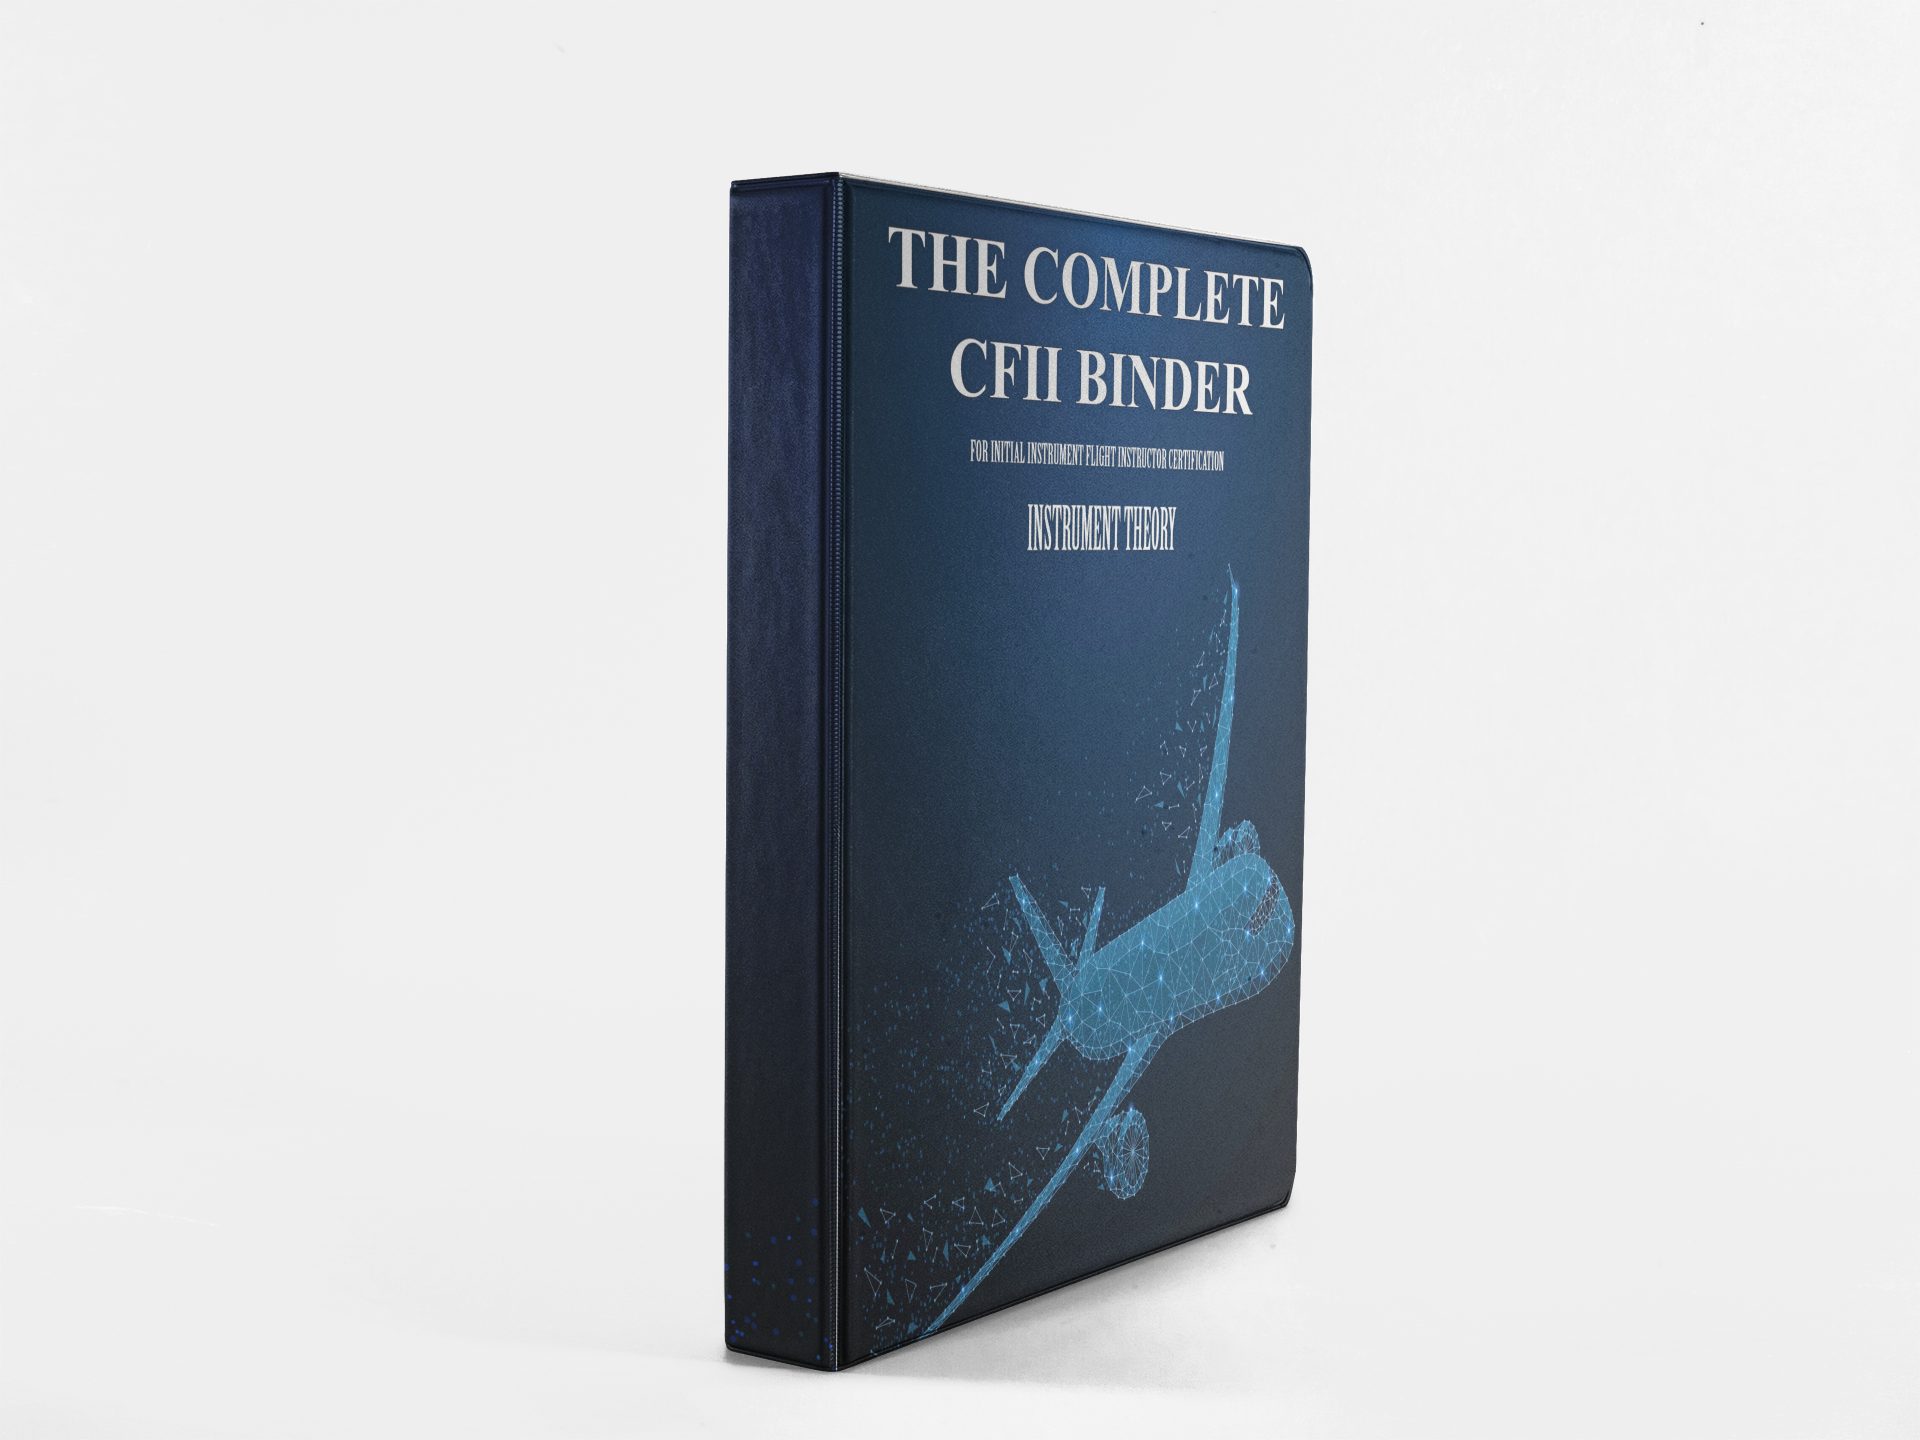 The Complete CFII Binder